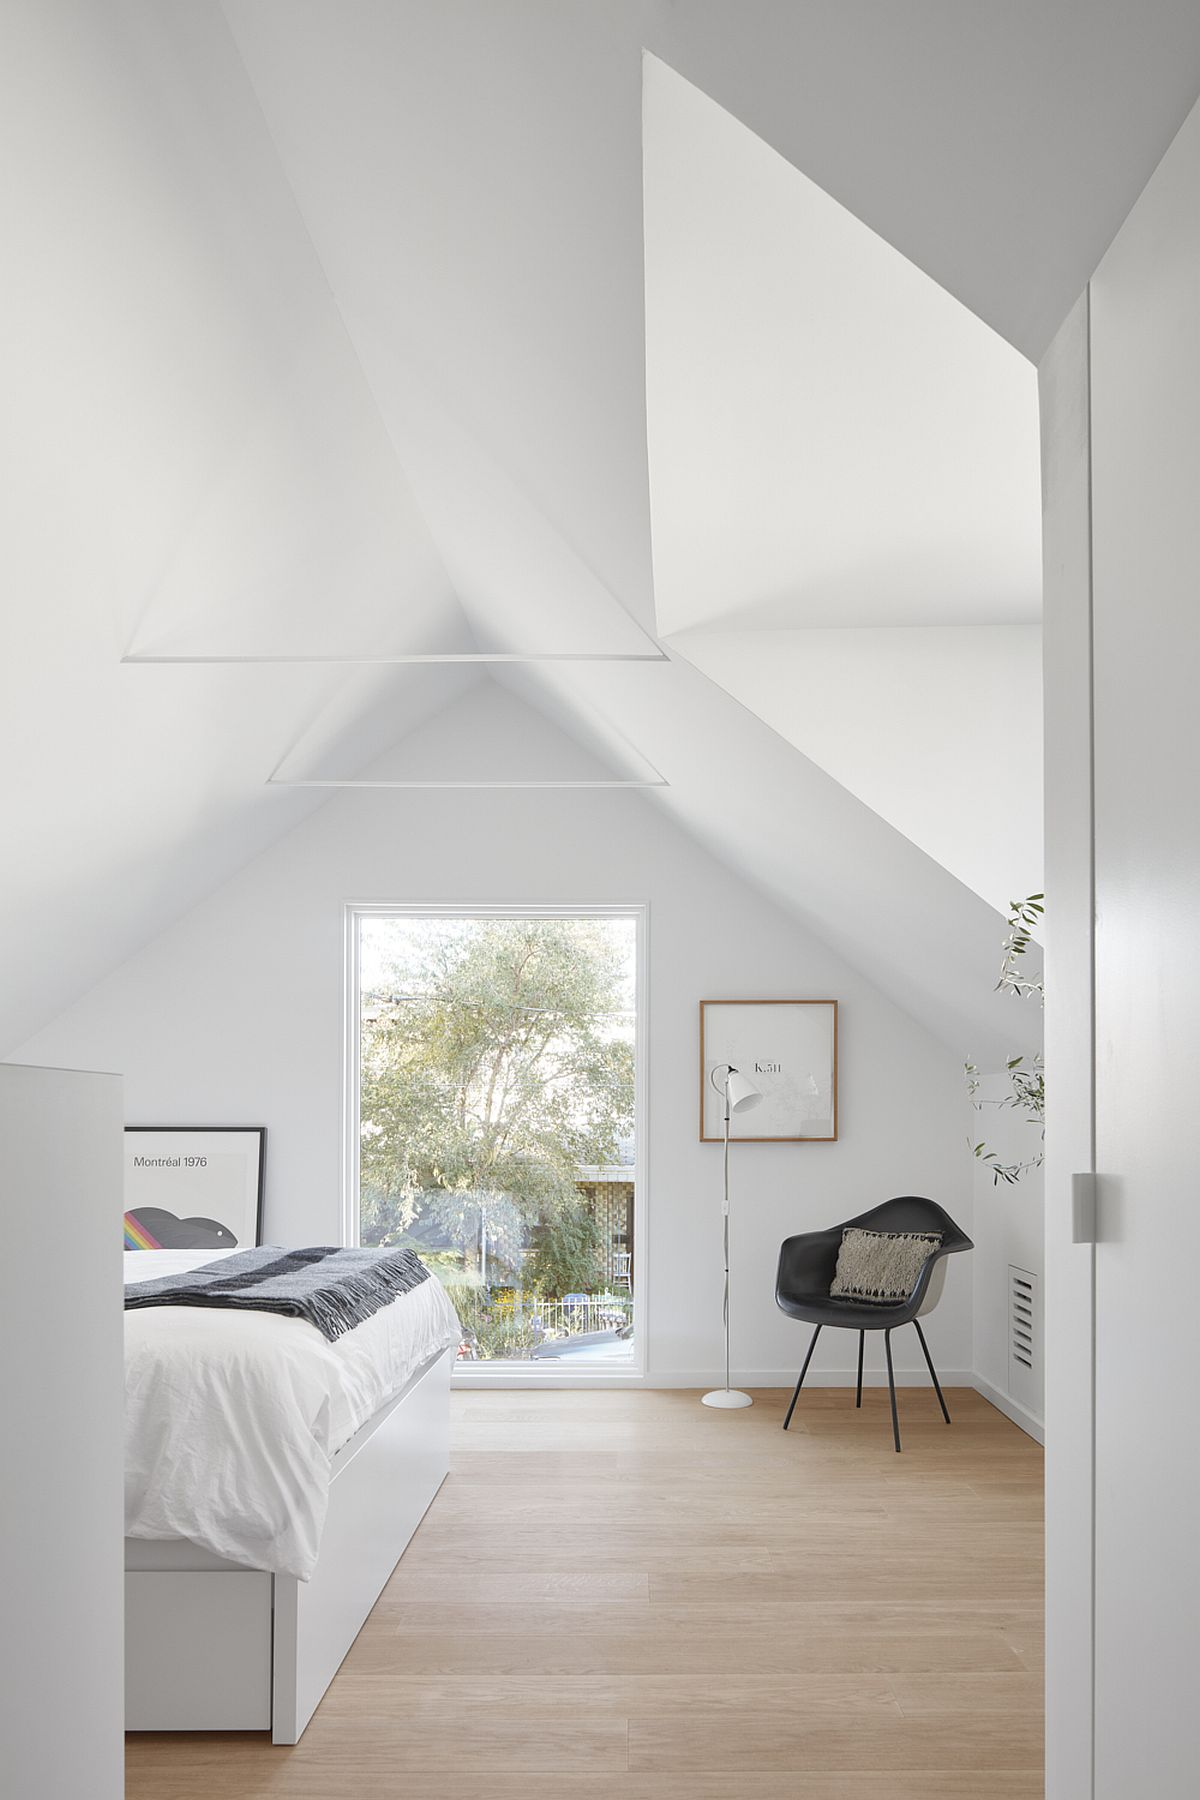 Glass window and skylight bring ample natural light into the bedroom on the upper level